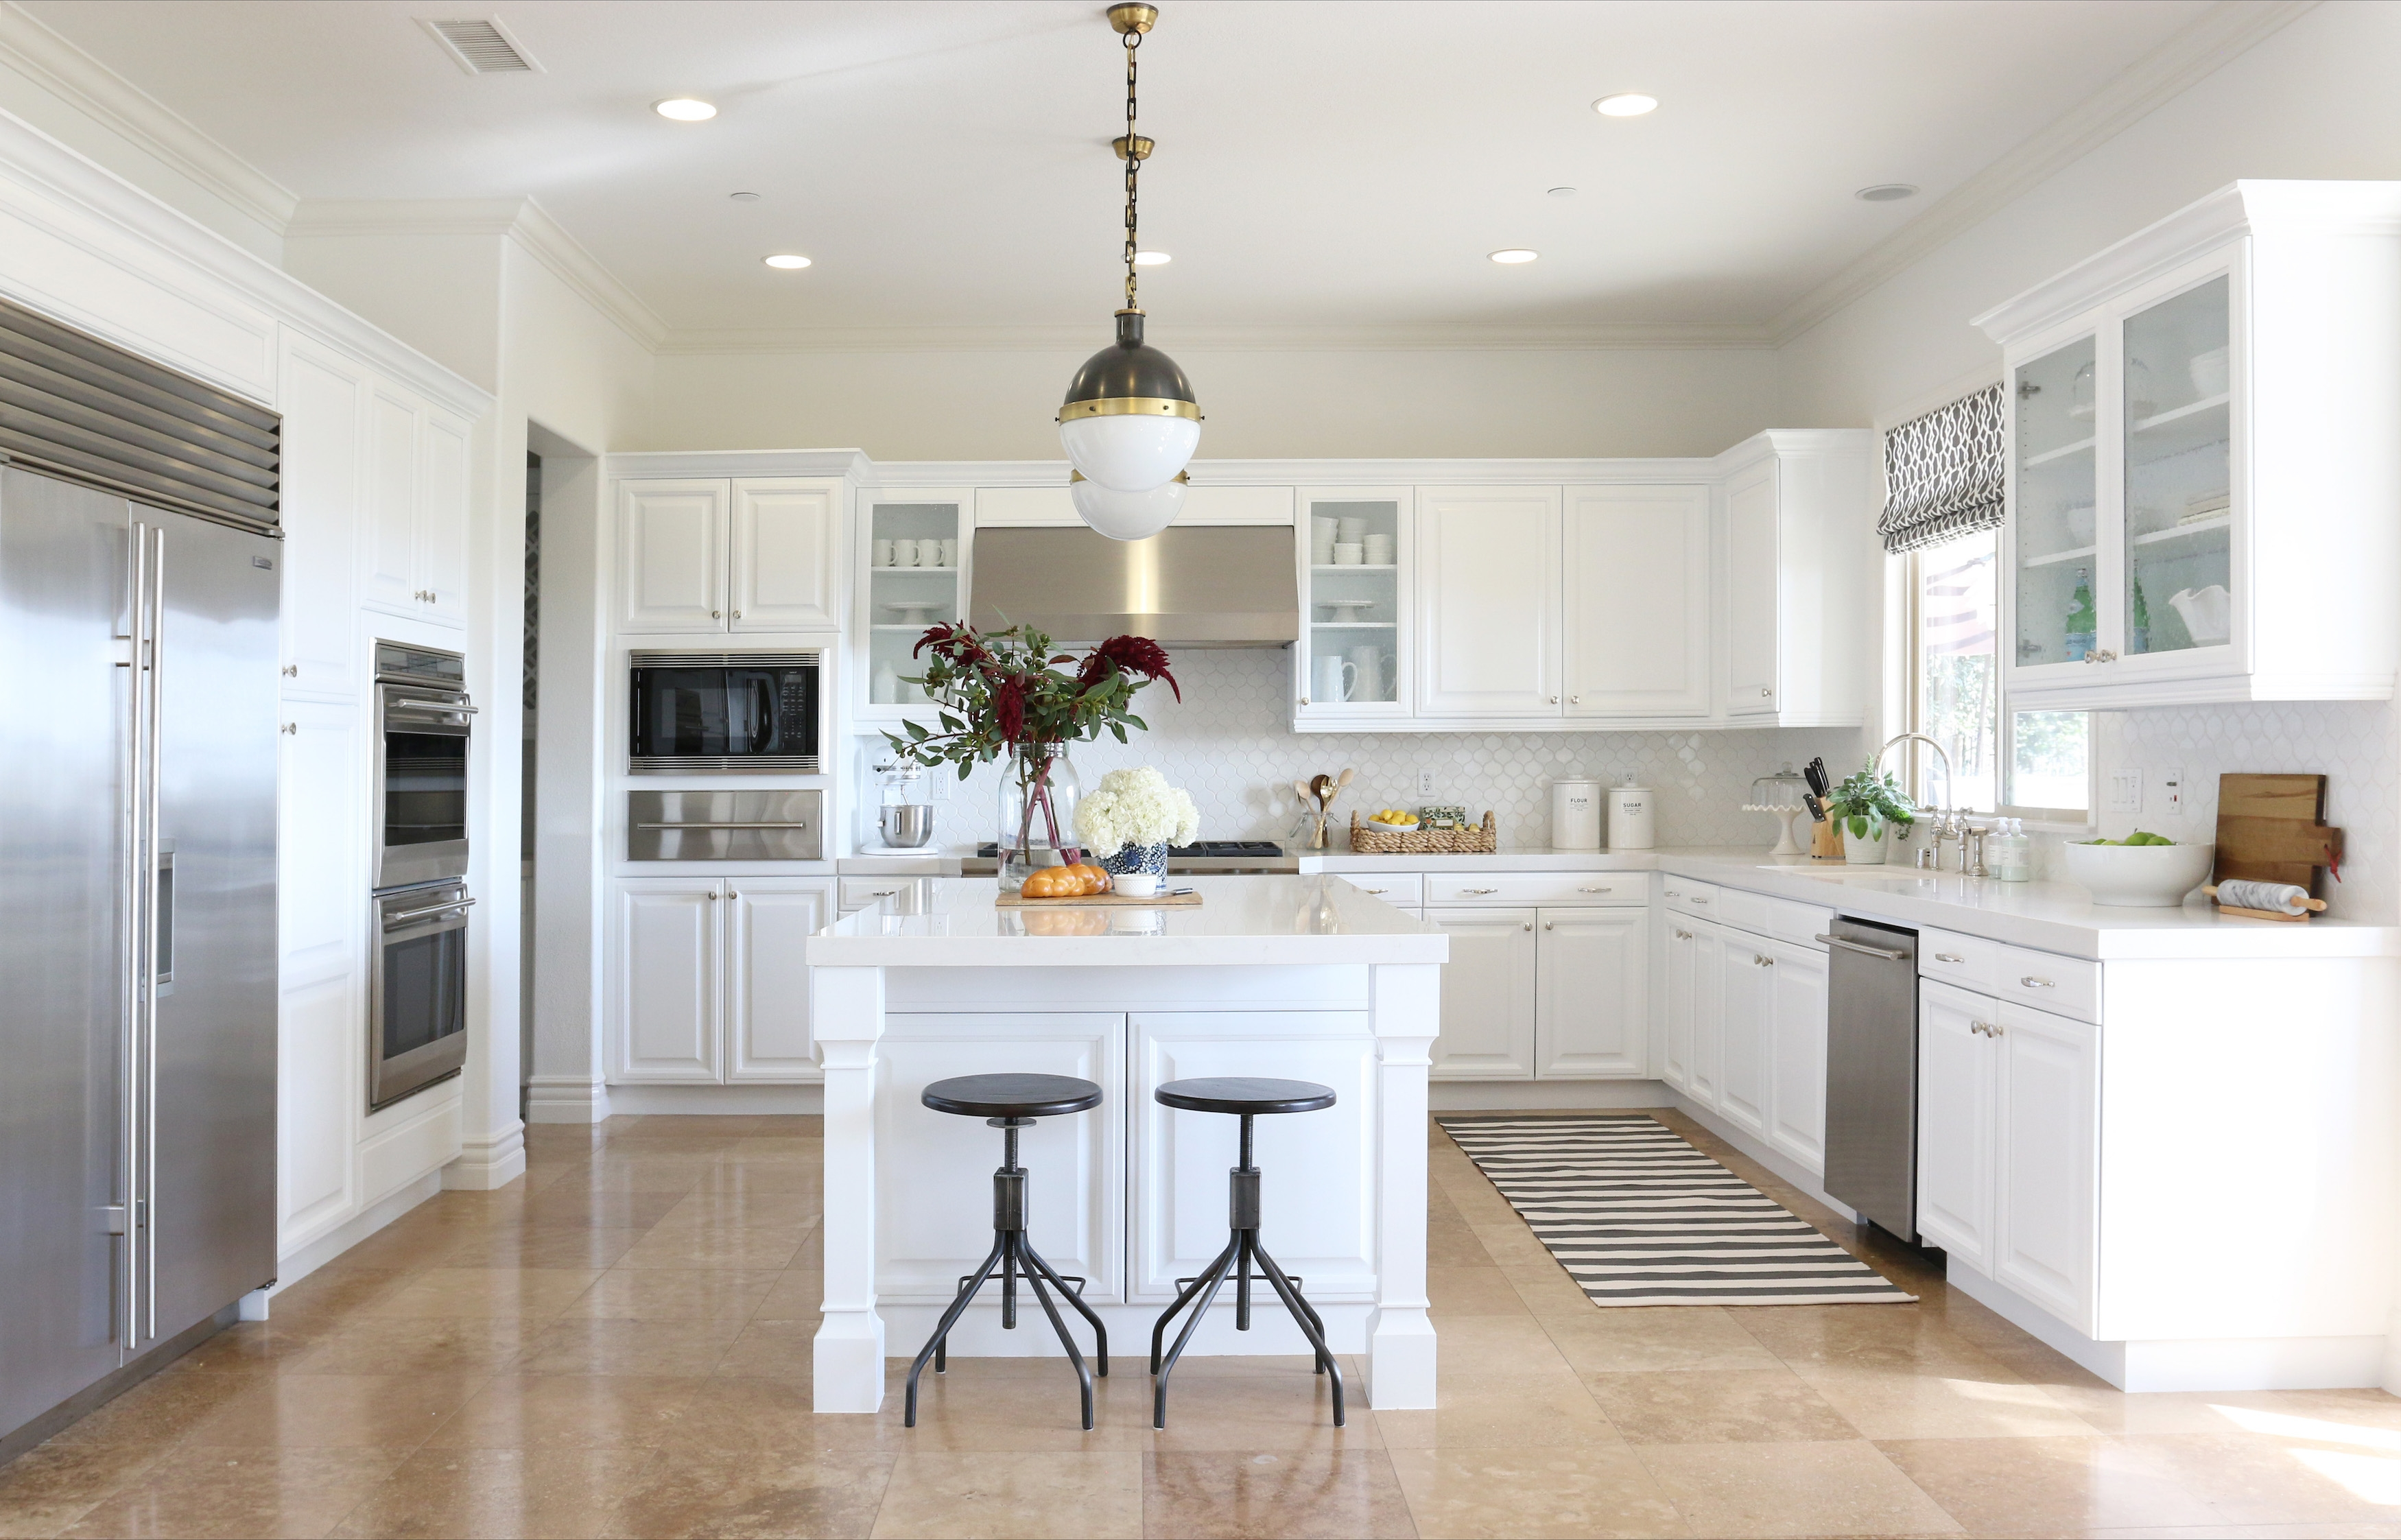 Kitchen Cabinets Design Pictures White3500 X 2245